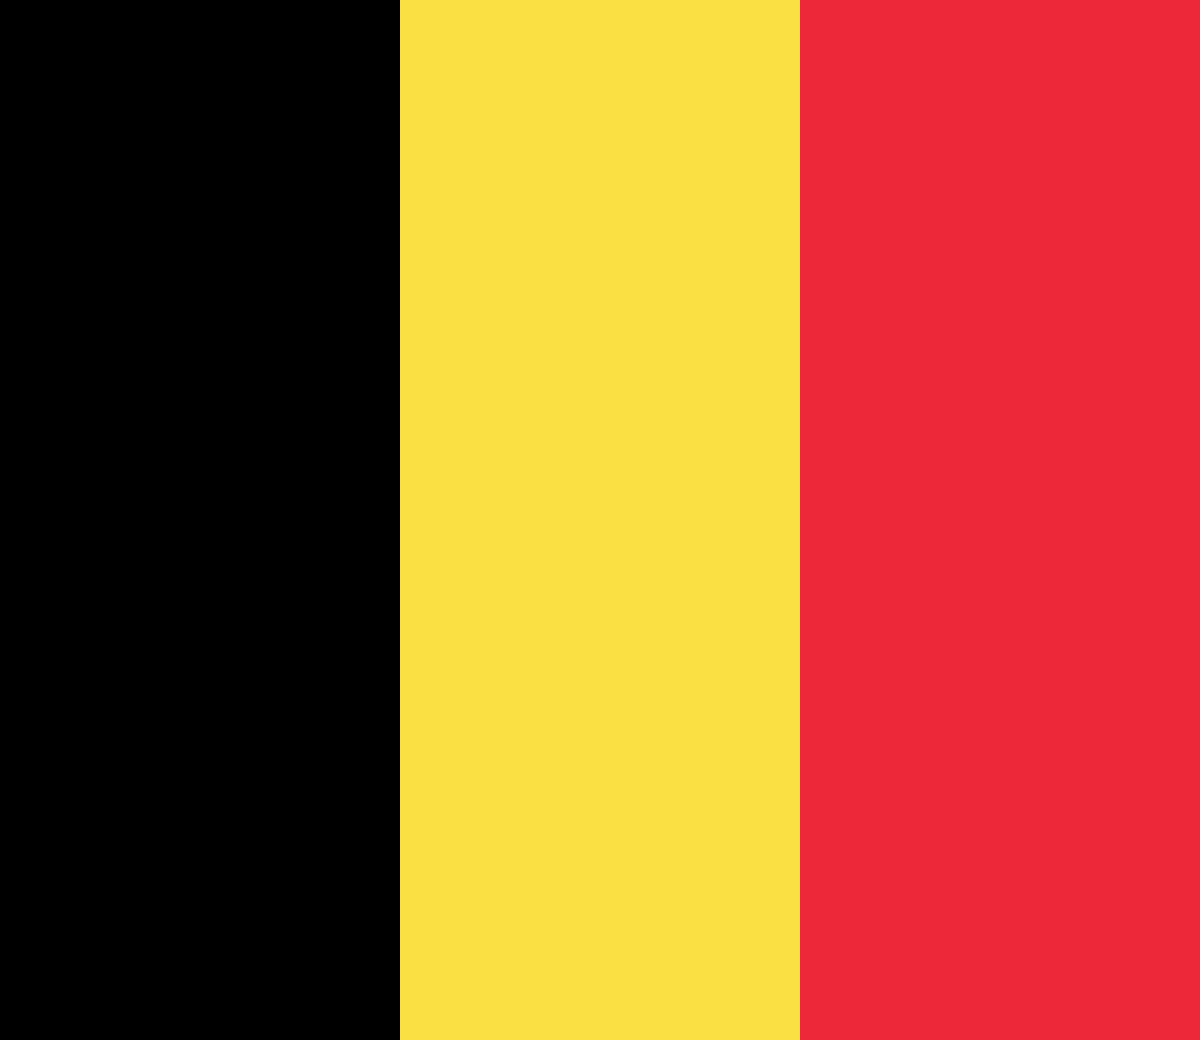 Welcoming the Belgian Government to Have I Been Pwned